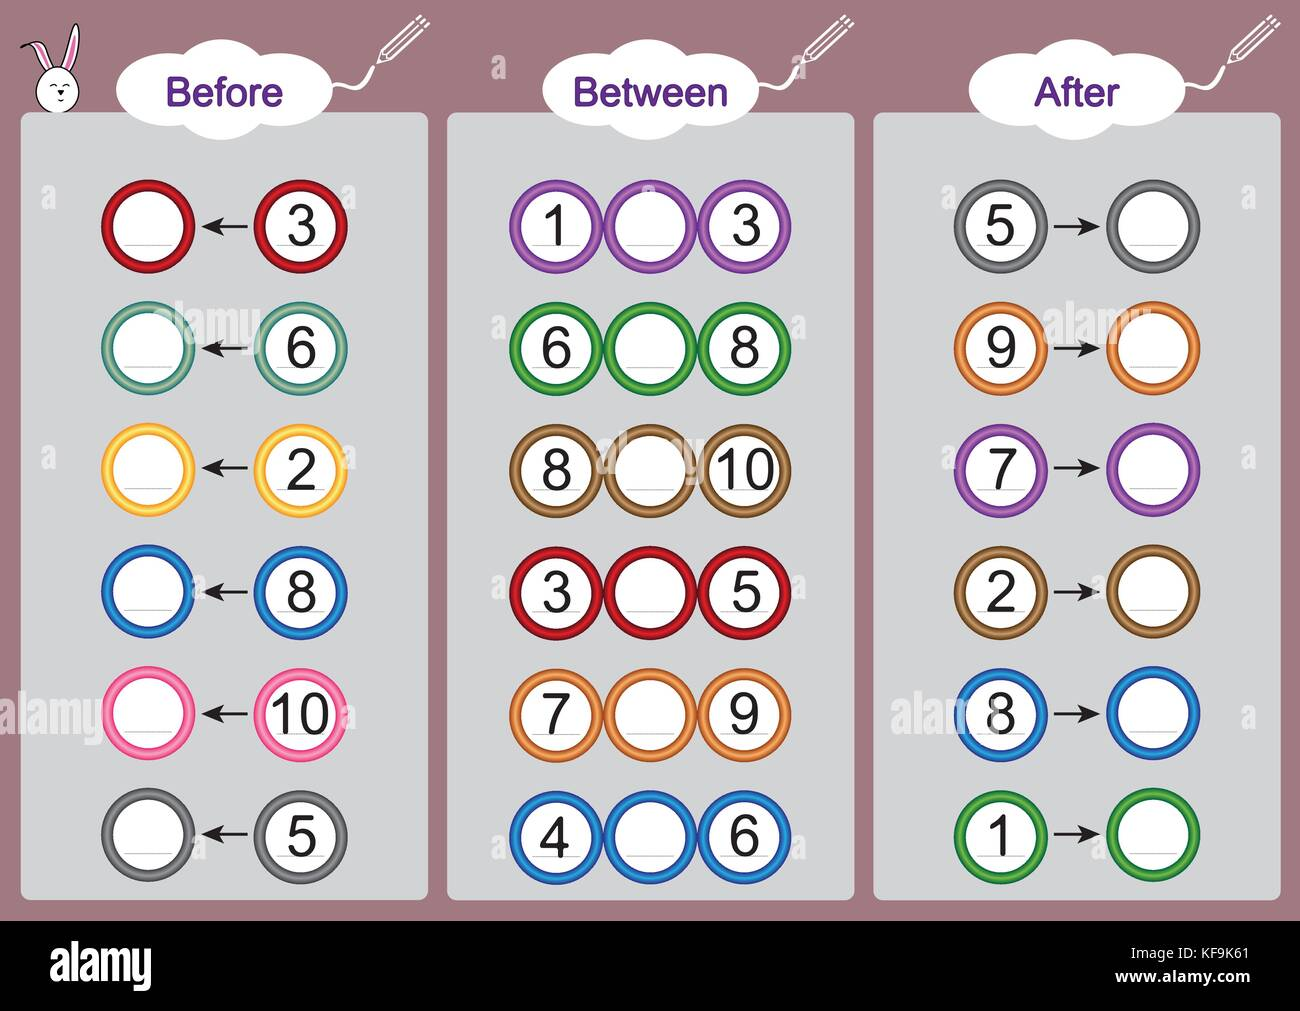 What Comes Before Between And After Math Worksheets For Kids Stock